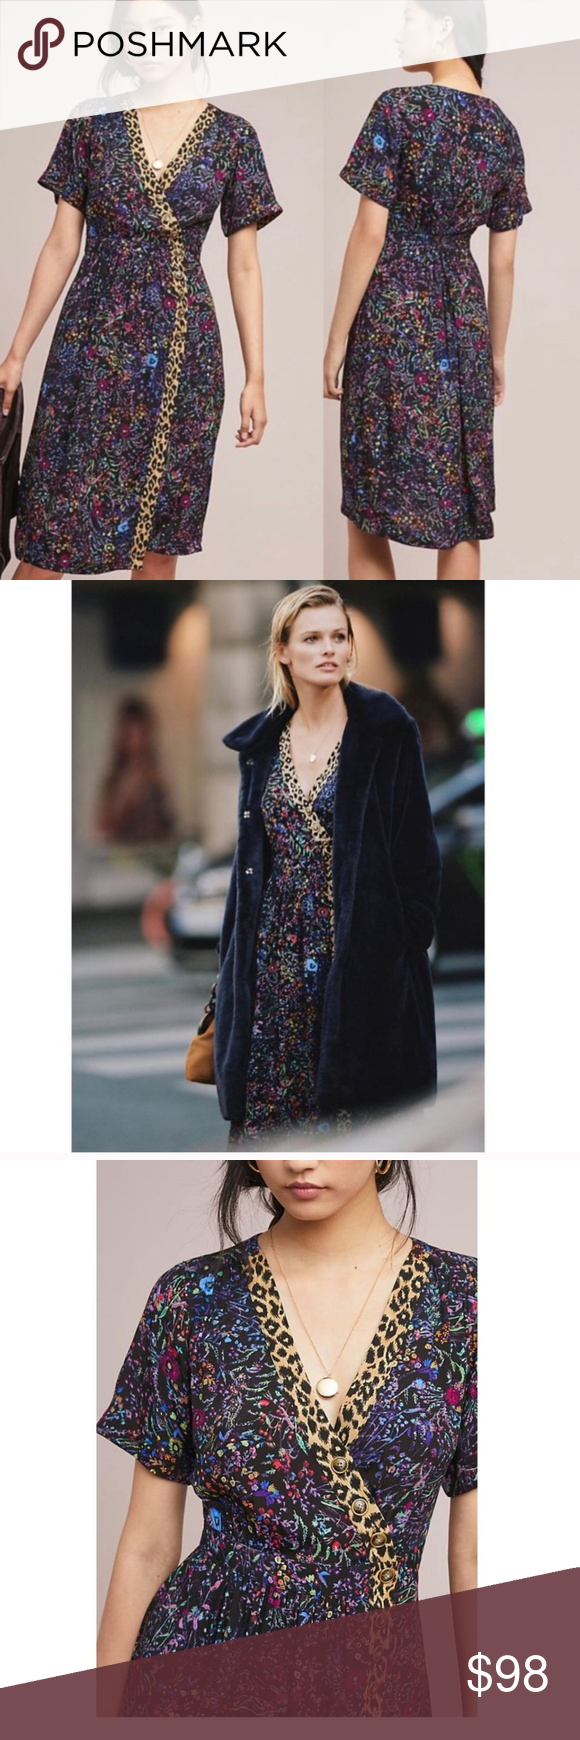 Directional Yet Demure Clothing For The Cool Modern Woman: ANTHRO/MAEVE FLORAL LEOPARD MOTIF DRESS NEW WITH TAGS